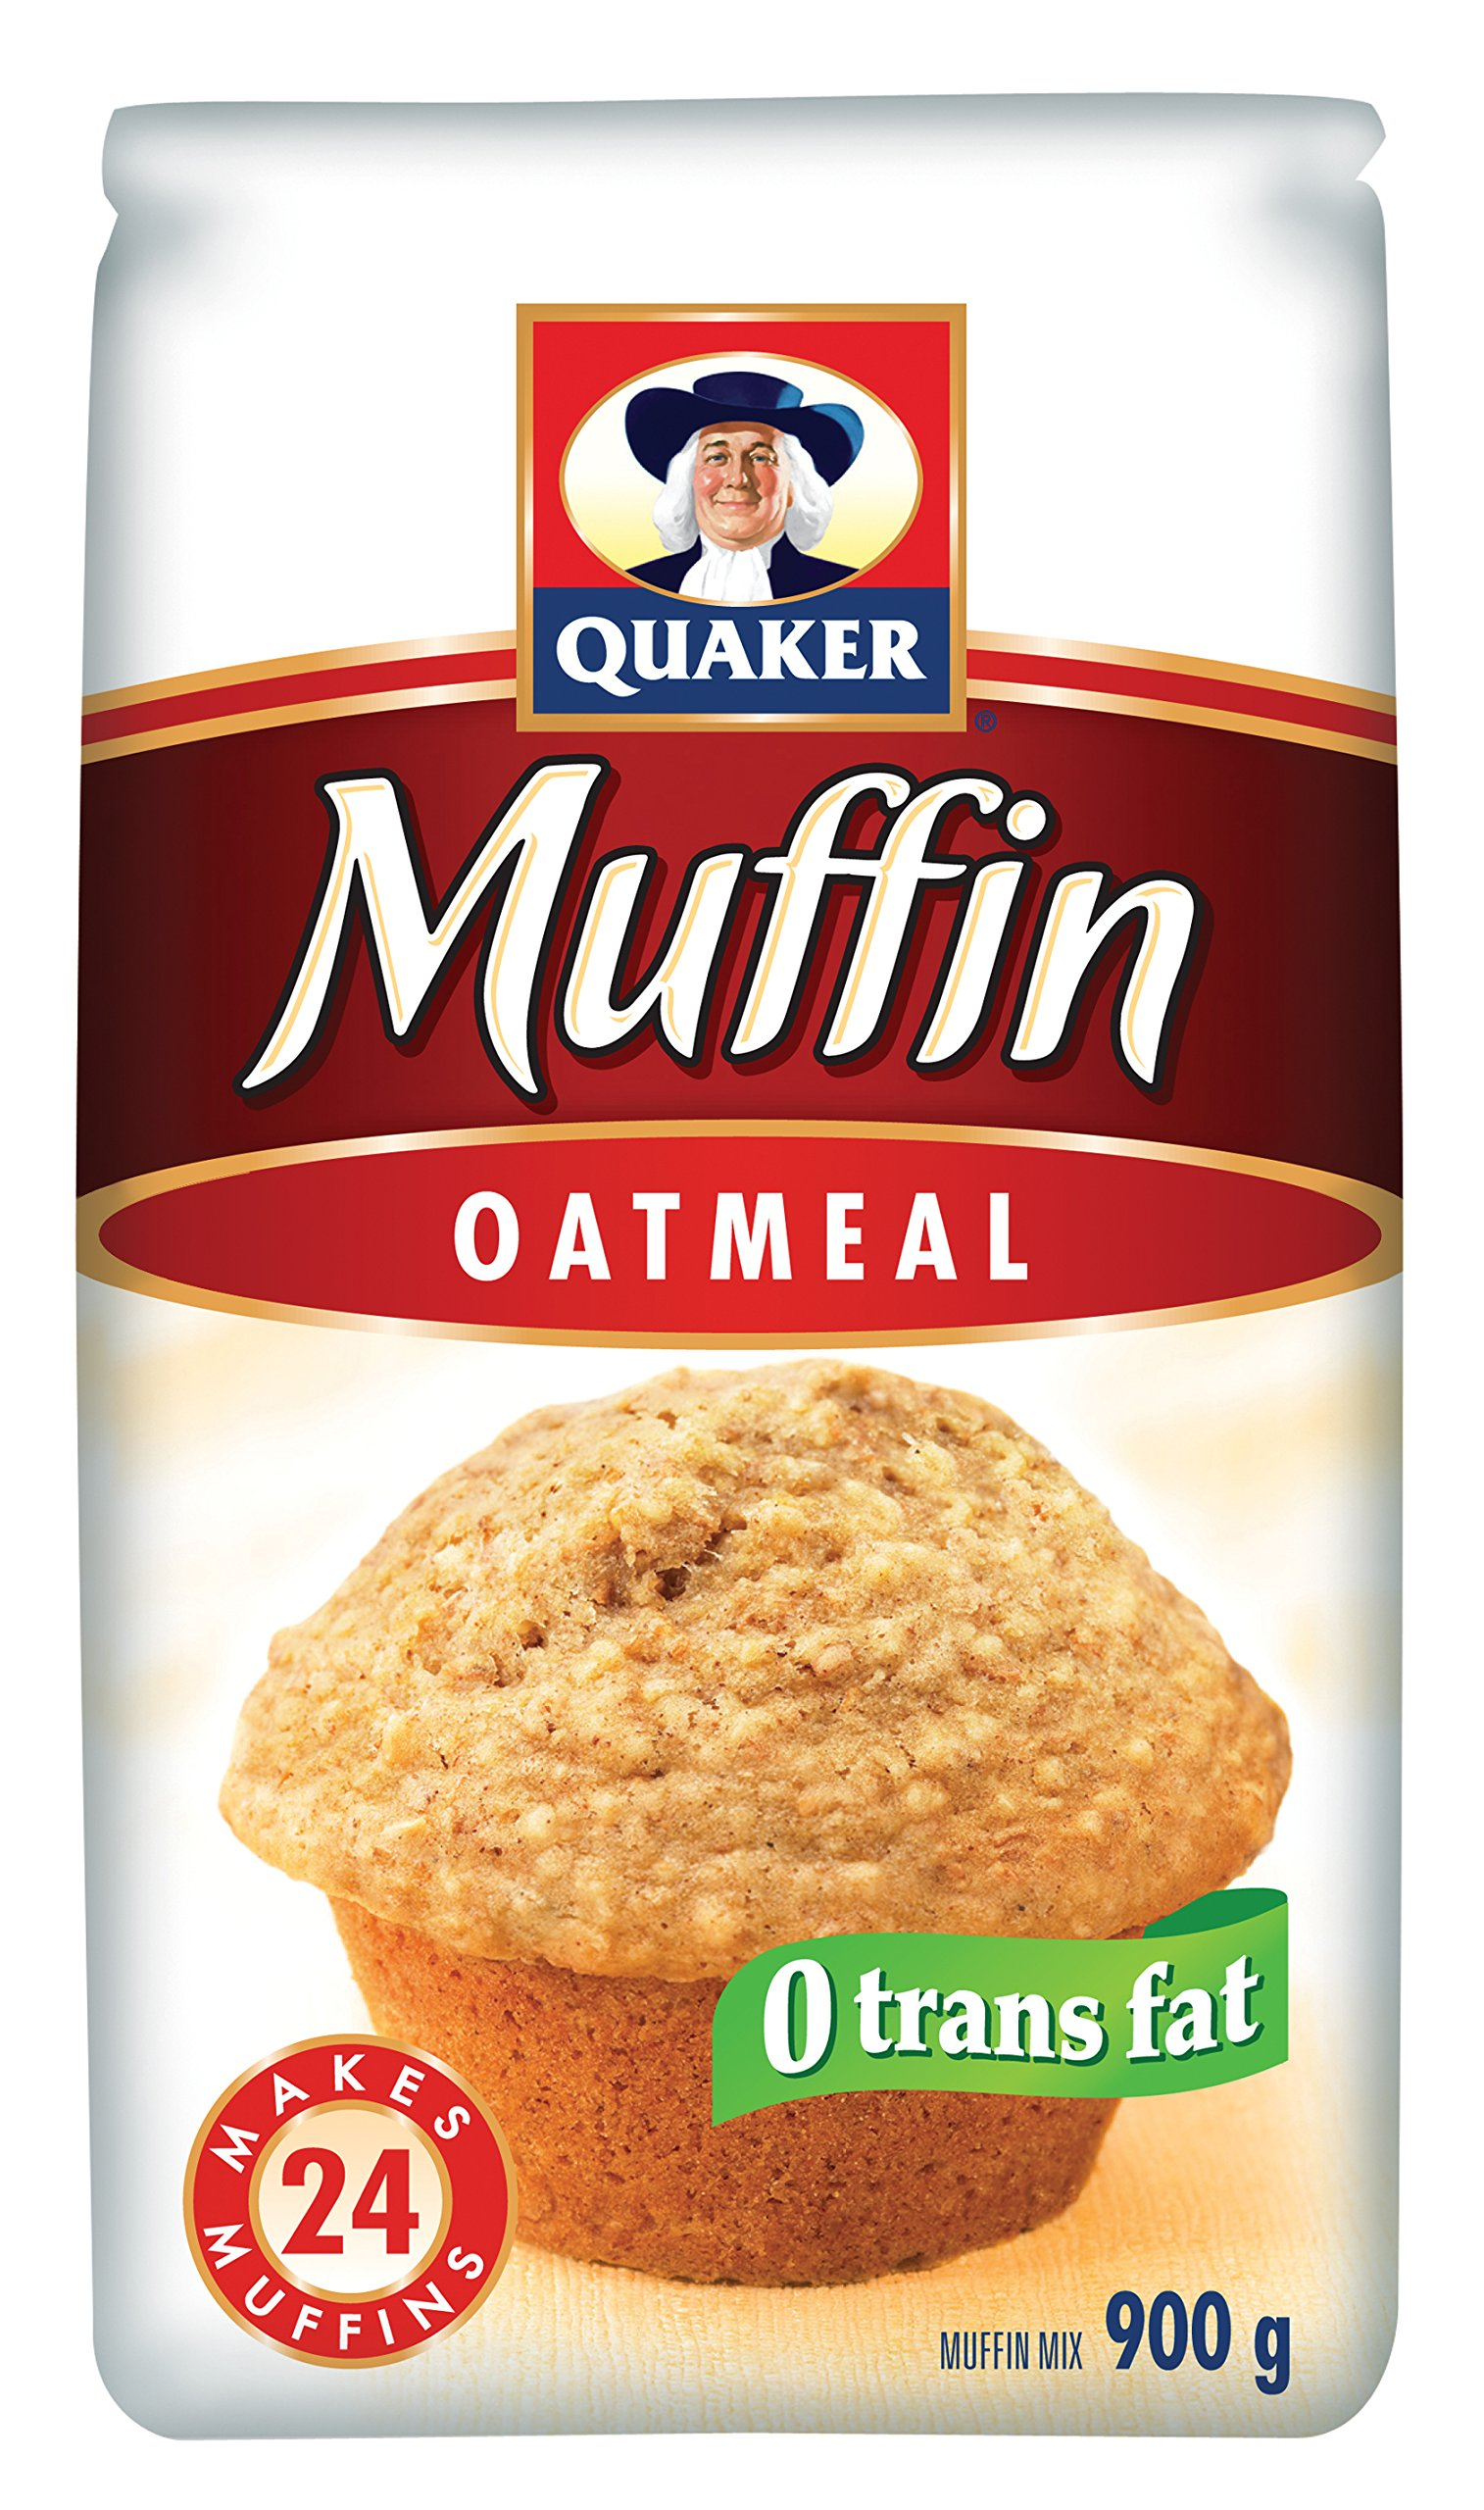 Quaker Muffin Mix Oatmeal 900 grams 24 muffins - Imported from Canada